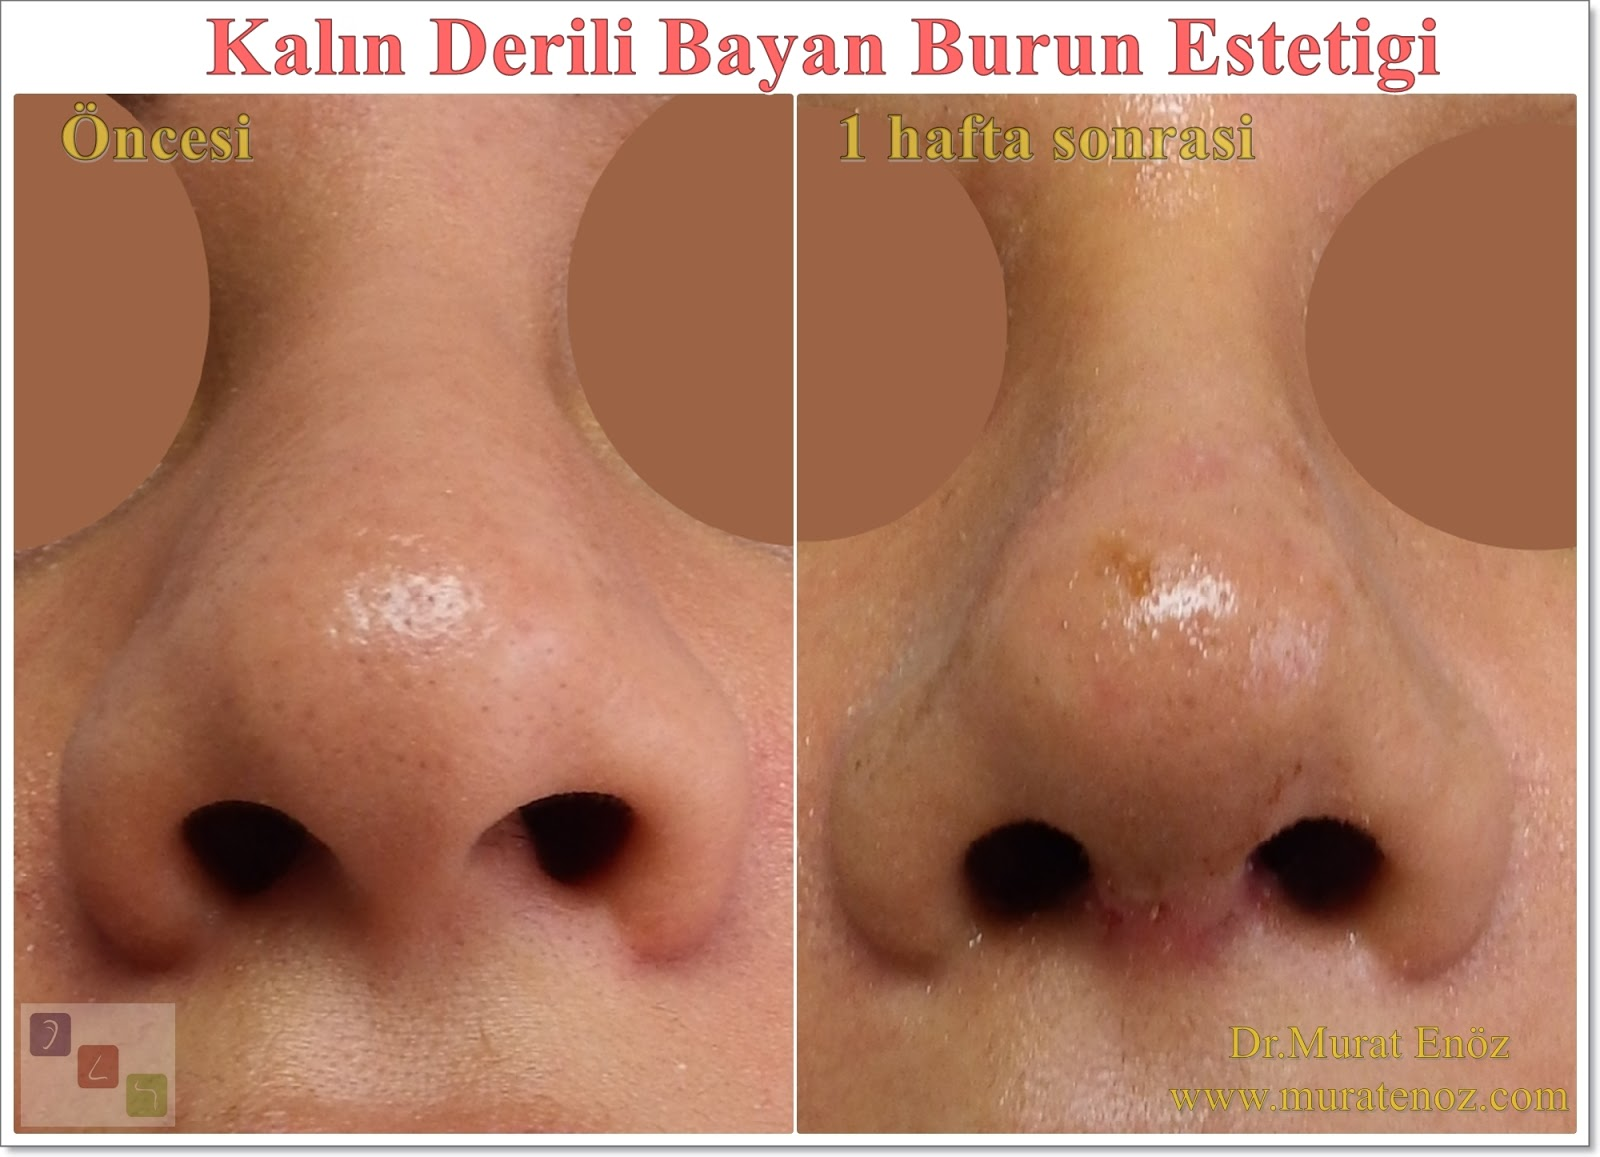 Taping After Rhinoplasty Is Effective For Swelling In Thick Skinned Patients